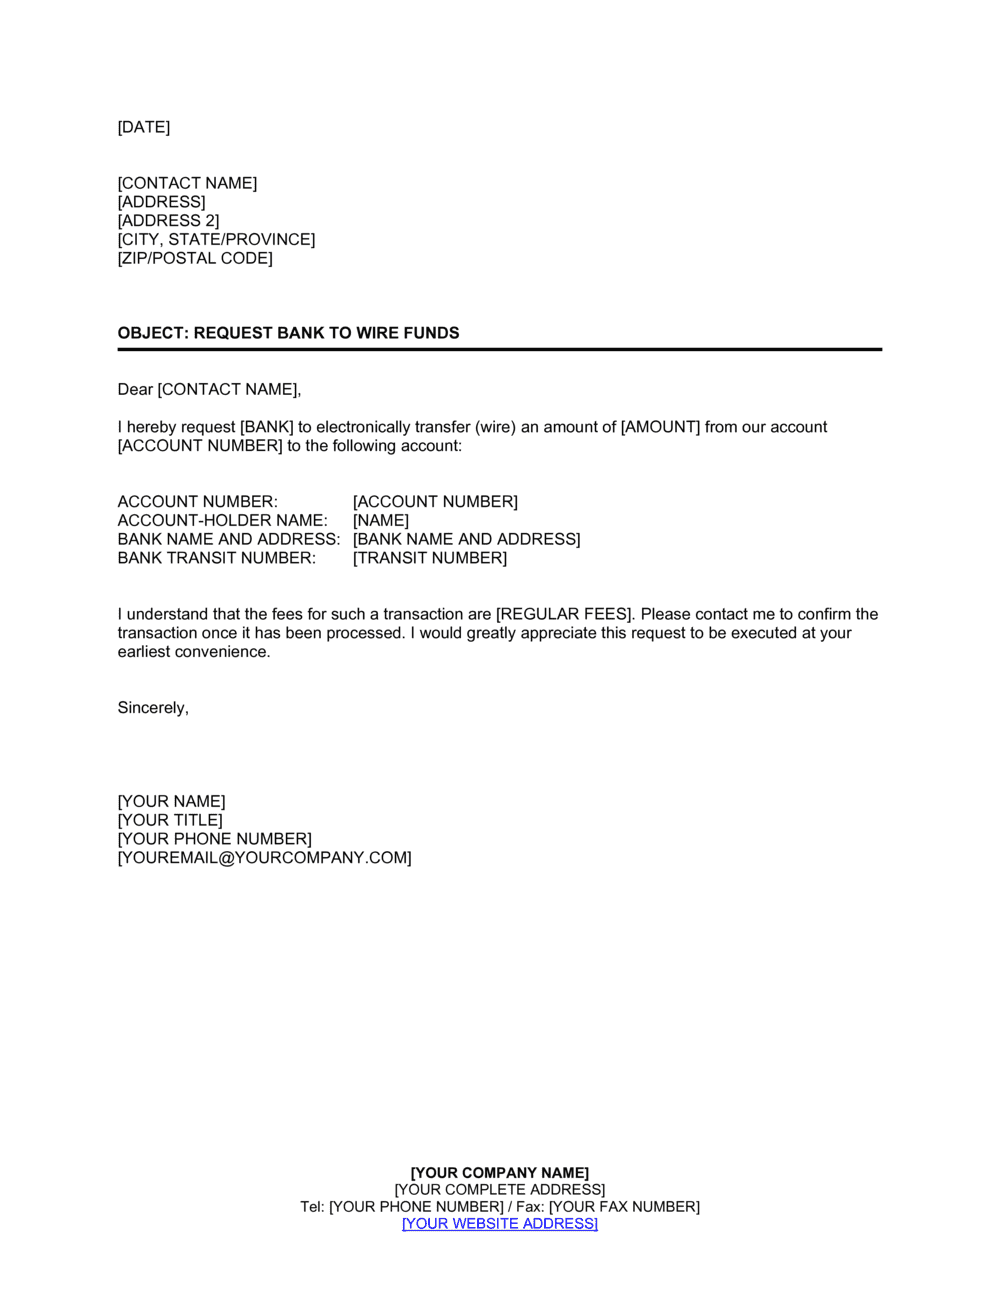 Sample Letter Requesting Financial Assistance from templates.business-in-a-box.com